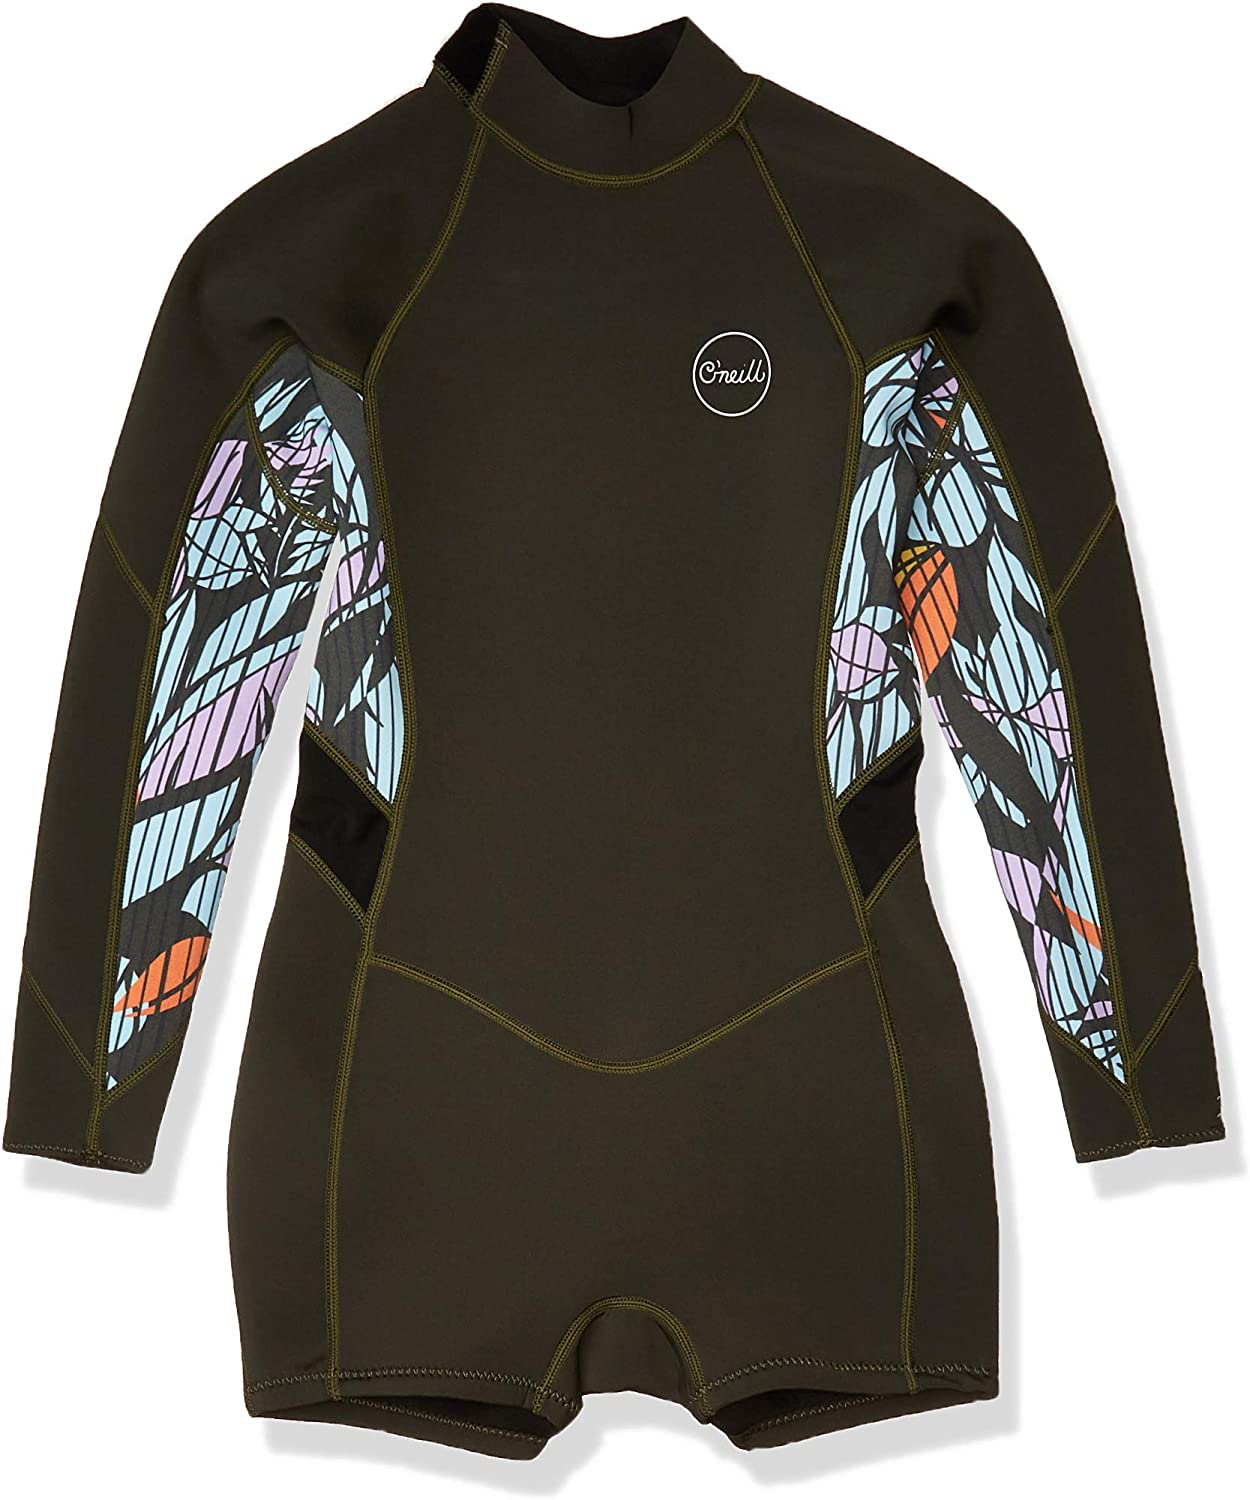 O'Neill Wetsuits Girls' O'neill Bahia 2/1mm Back Zip L/S Surf Suit